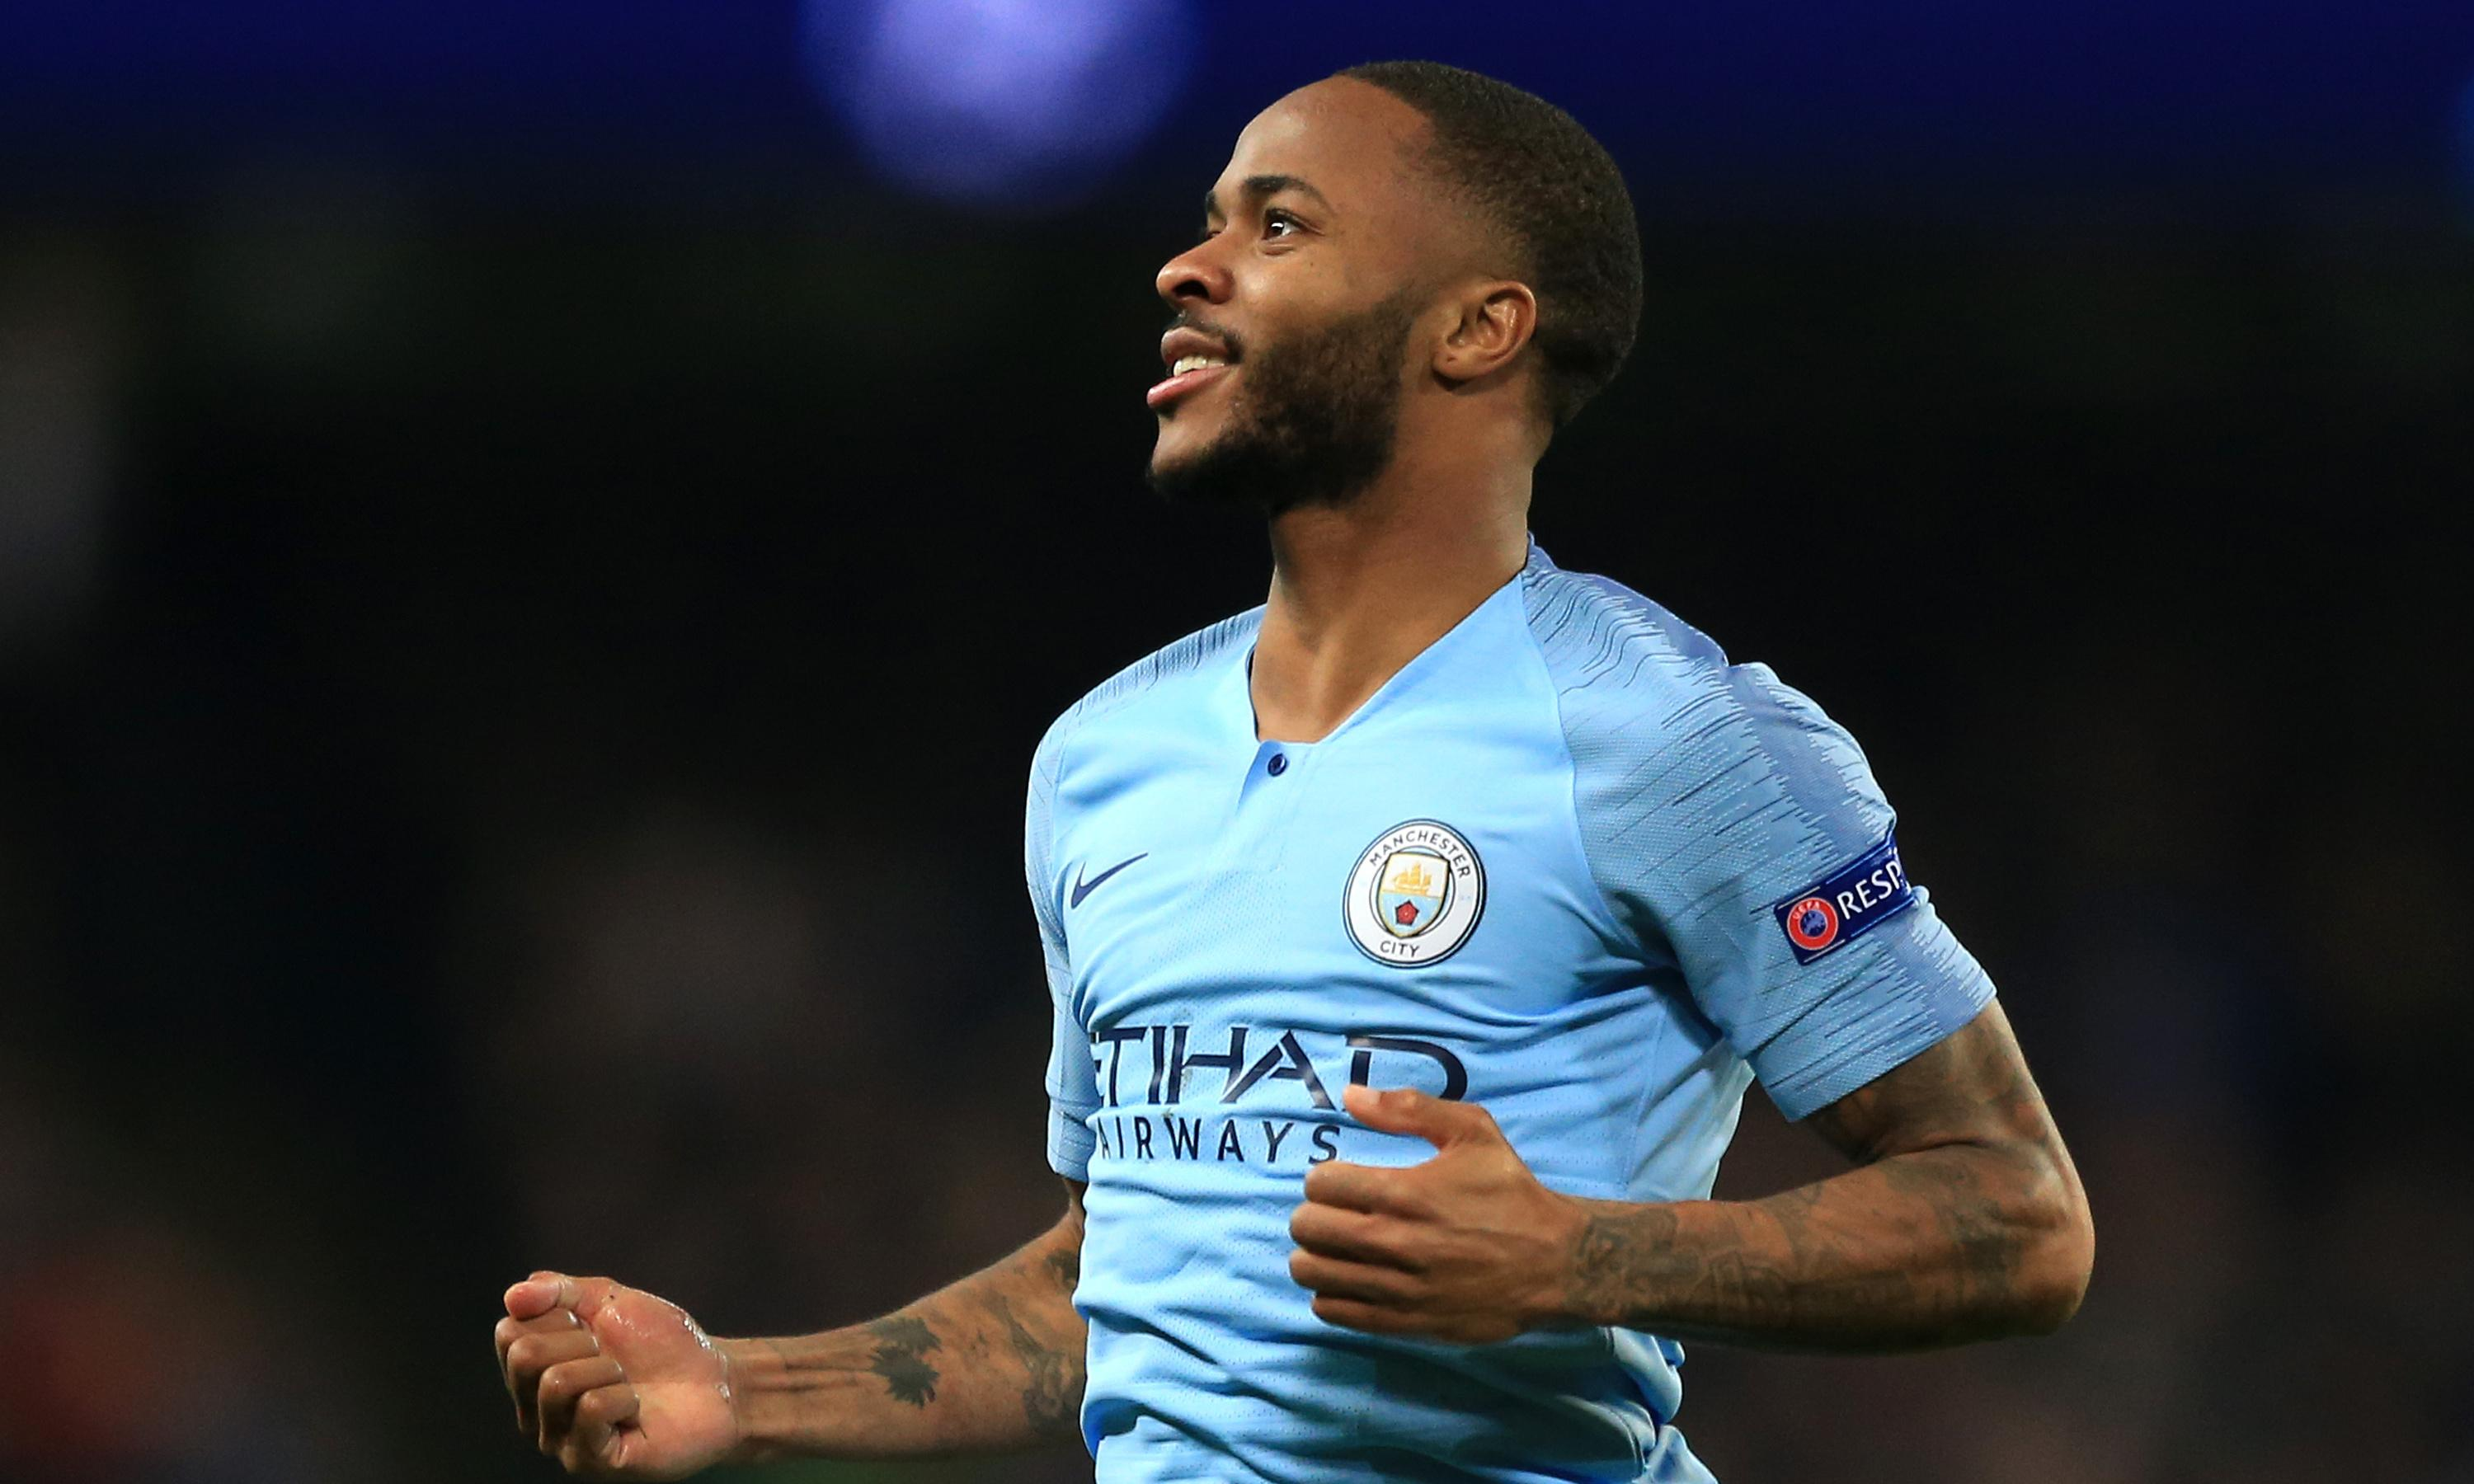 Raheem Sterling signs new Man City deal and says videos made him more ruthless